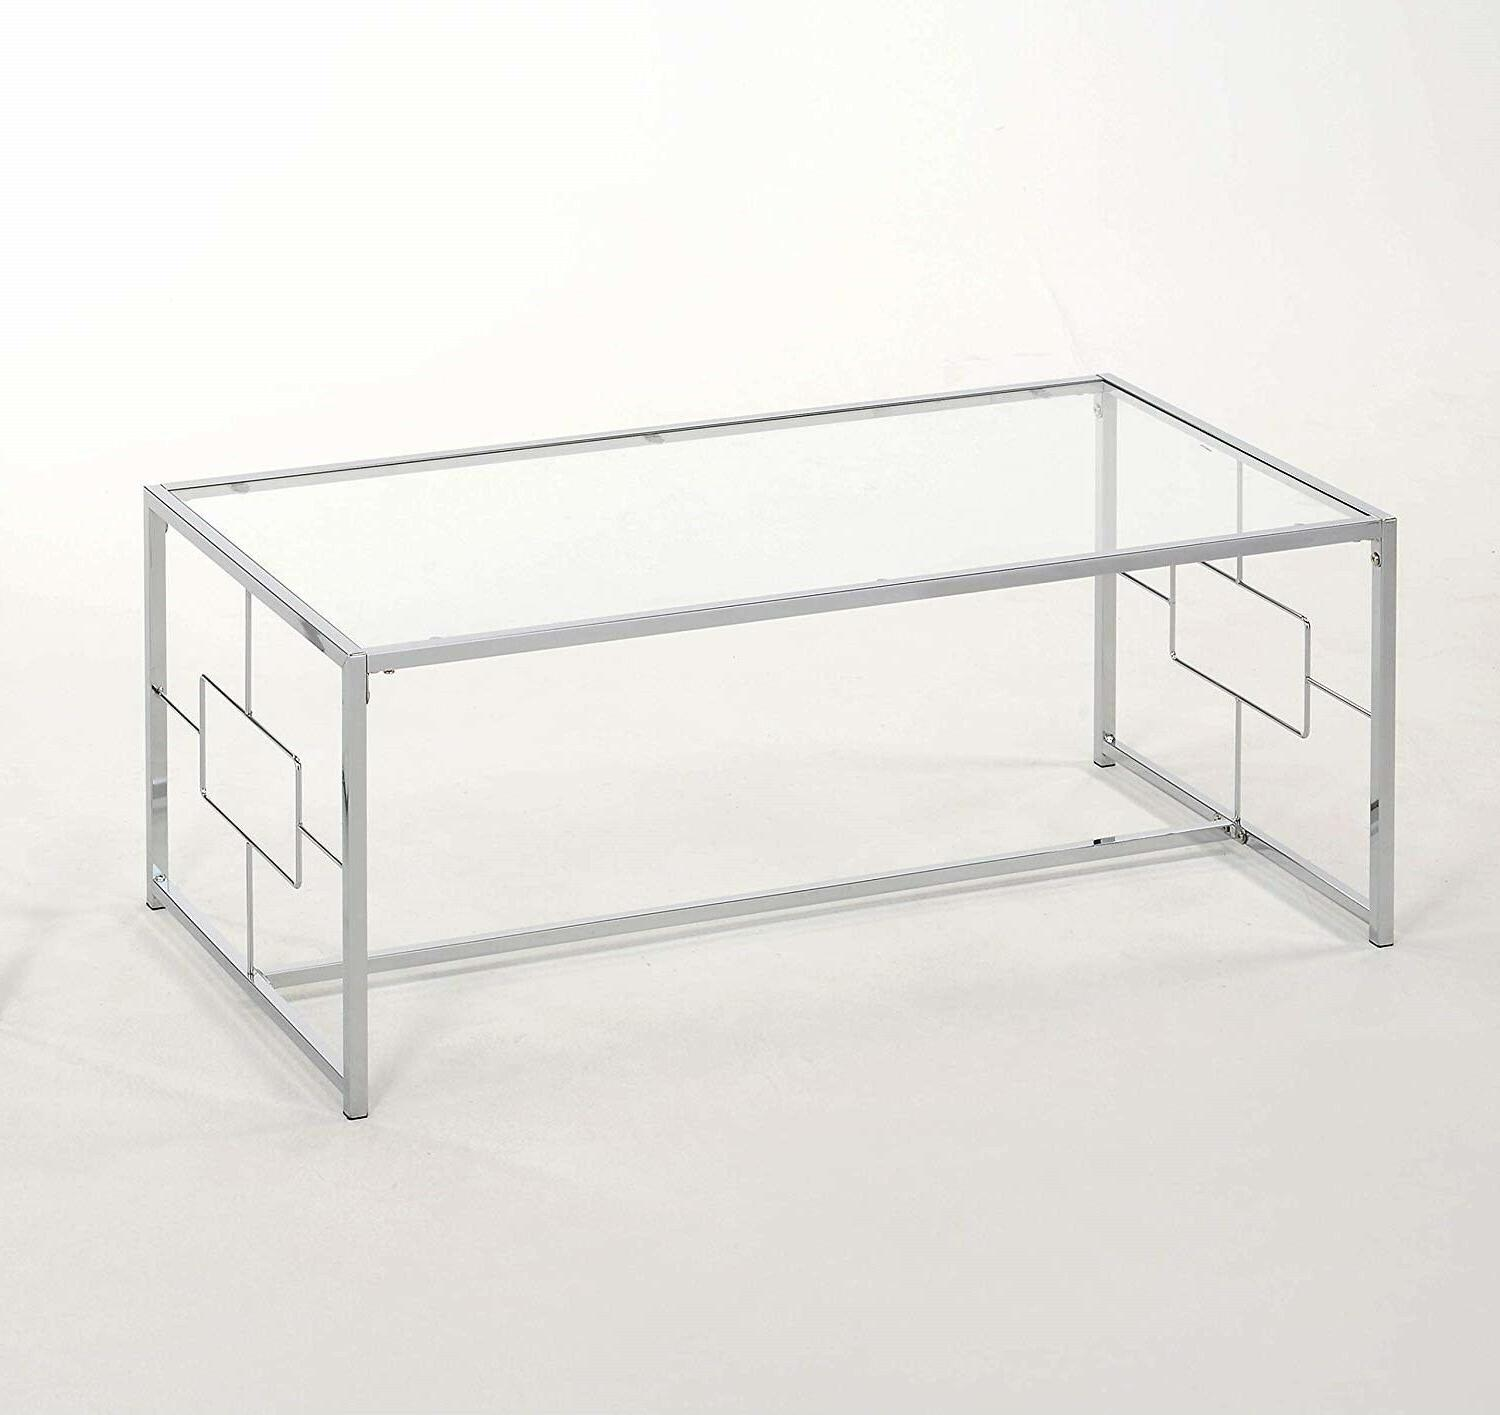 1PerfectChoice Chrome Coffee Table with Glass Table Top